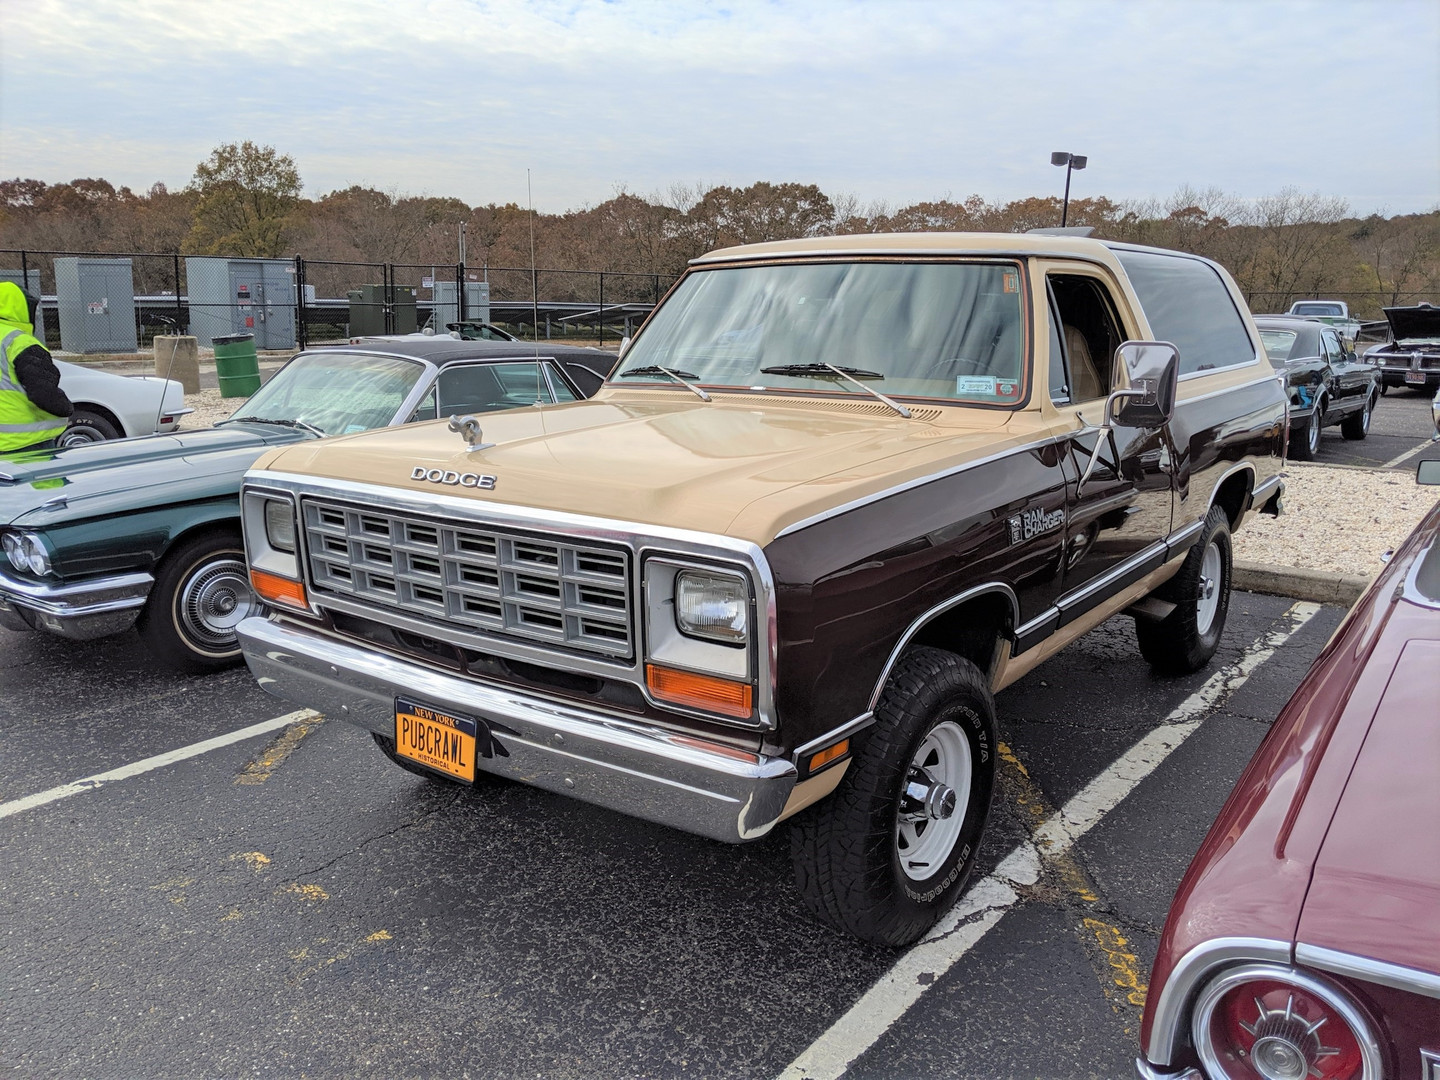 Rob Curley's 1982 Dodge Ramcharger